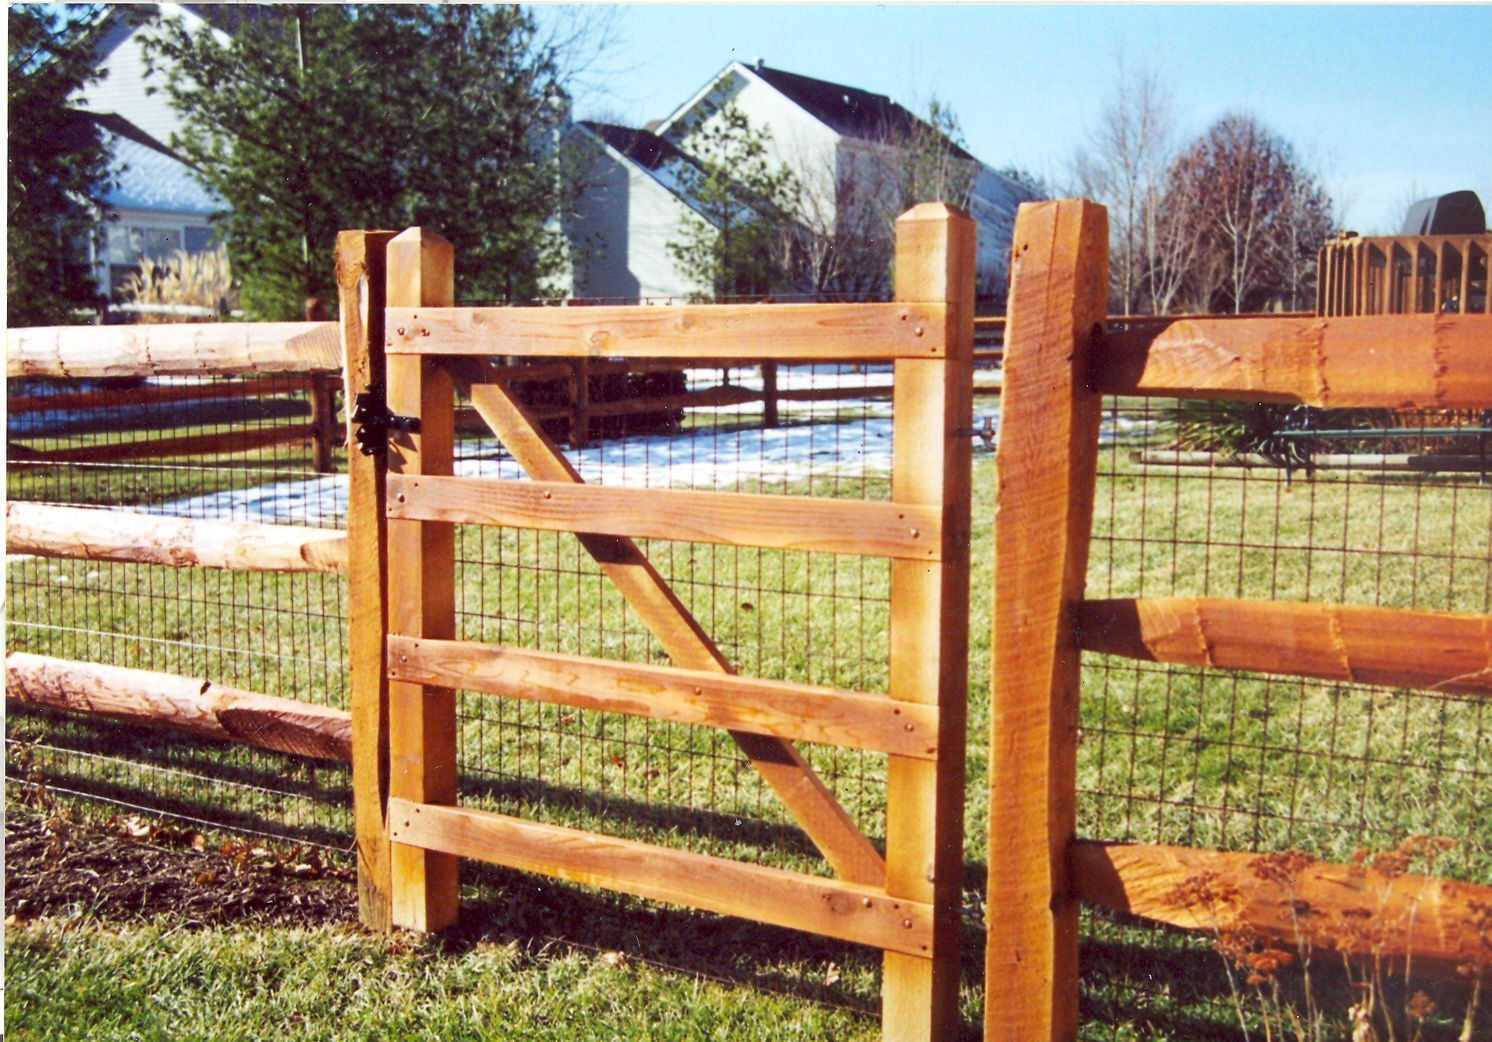 wooden slat fence with metal posts for support rail fence wood fence